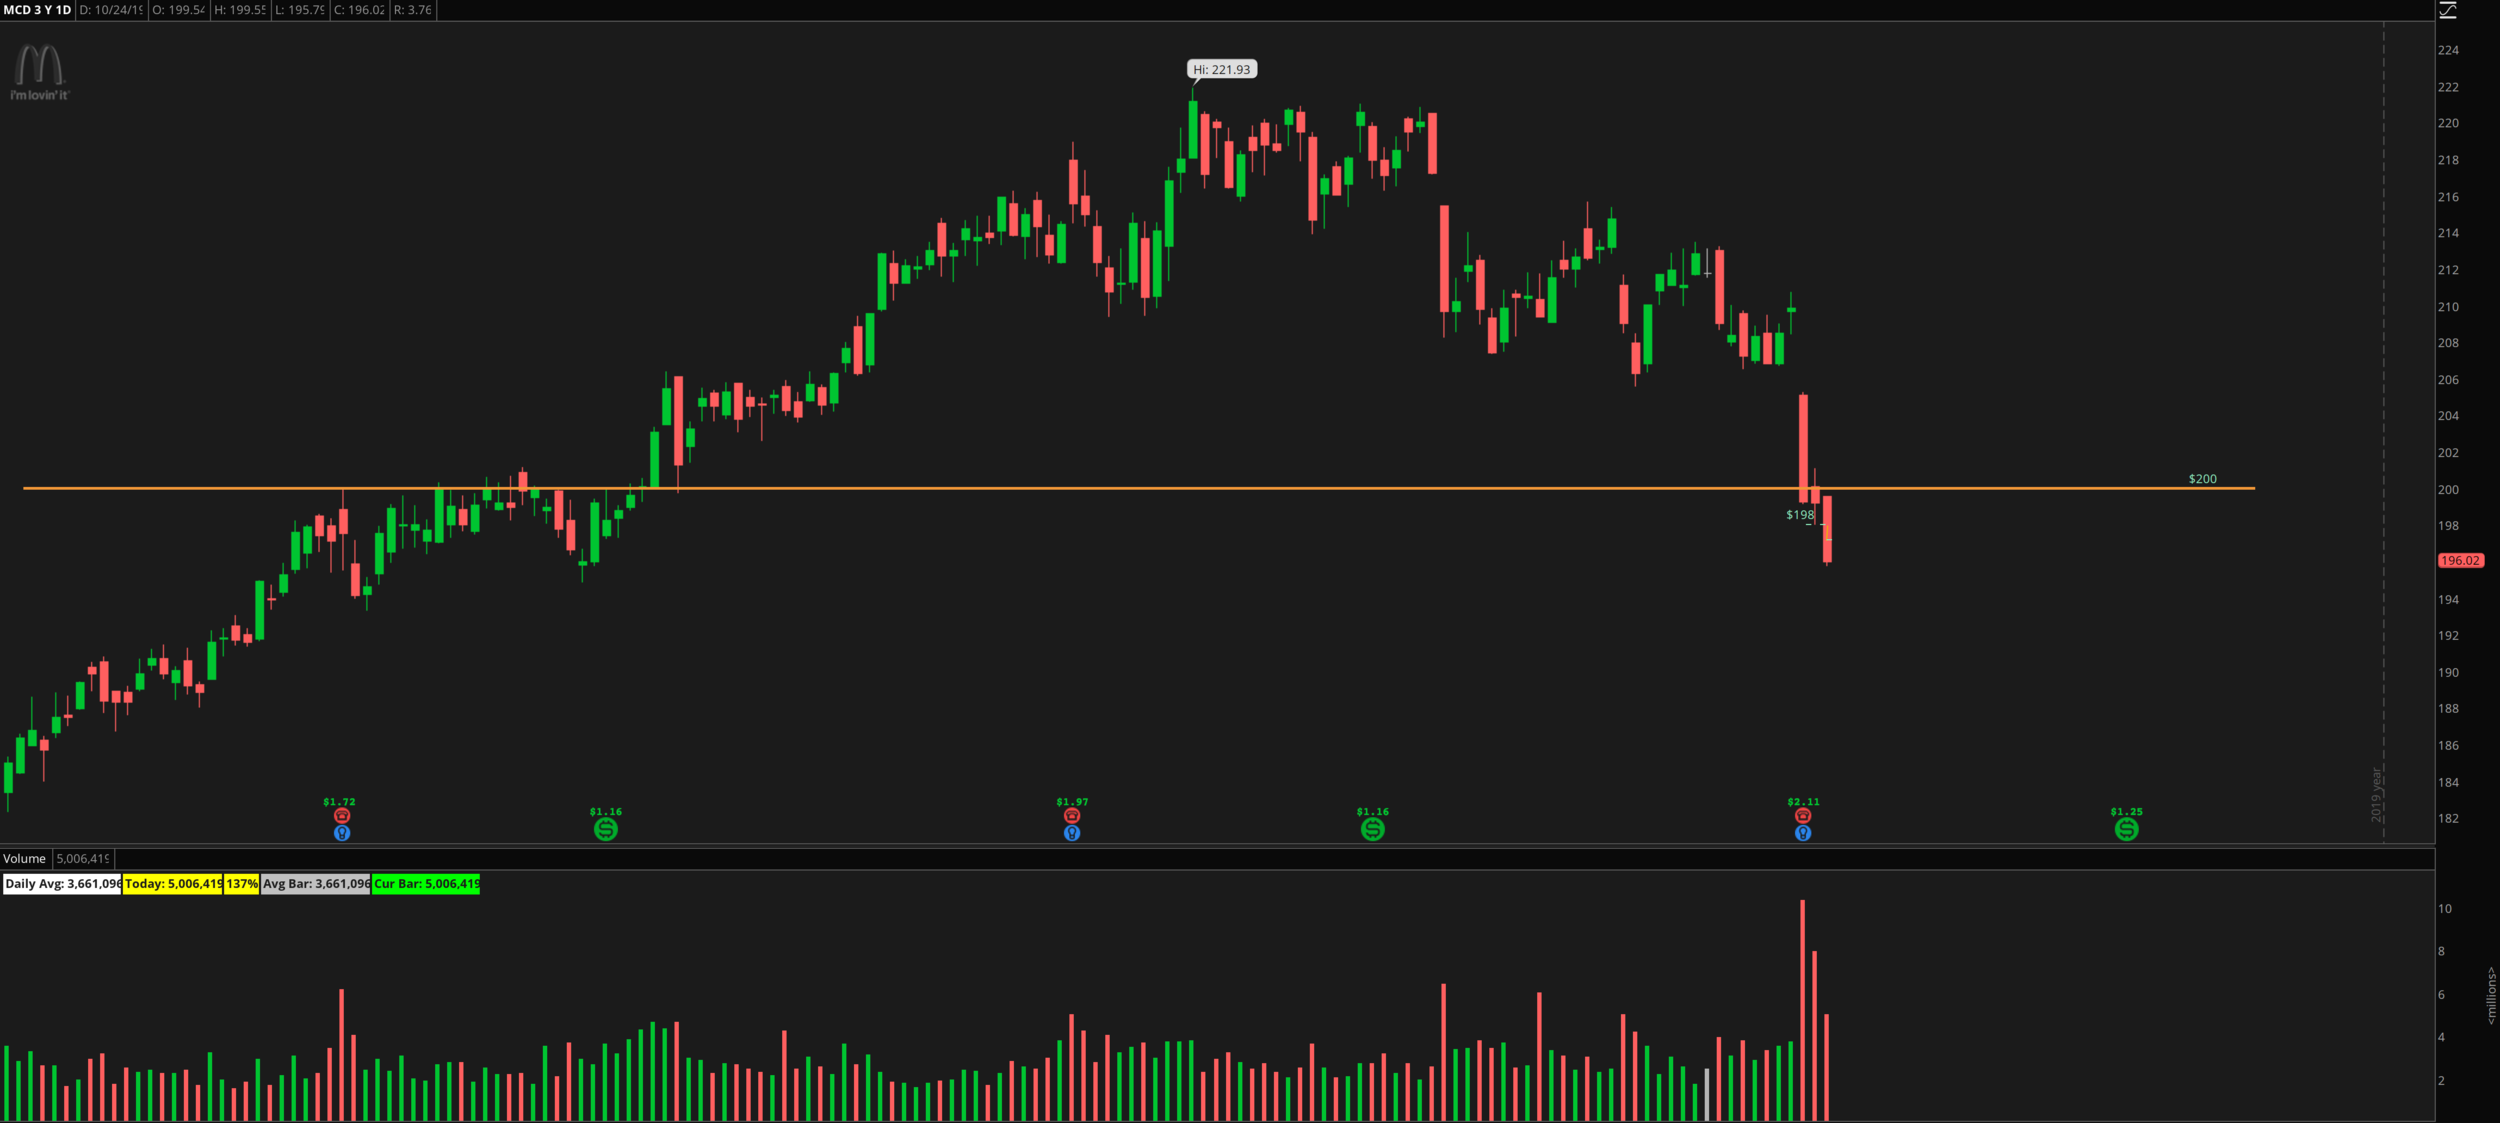 Graphic One: Daily chart of $MCD highlighting the recent earnings miss and move through support.